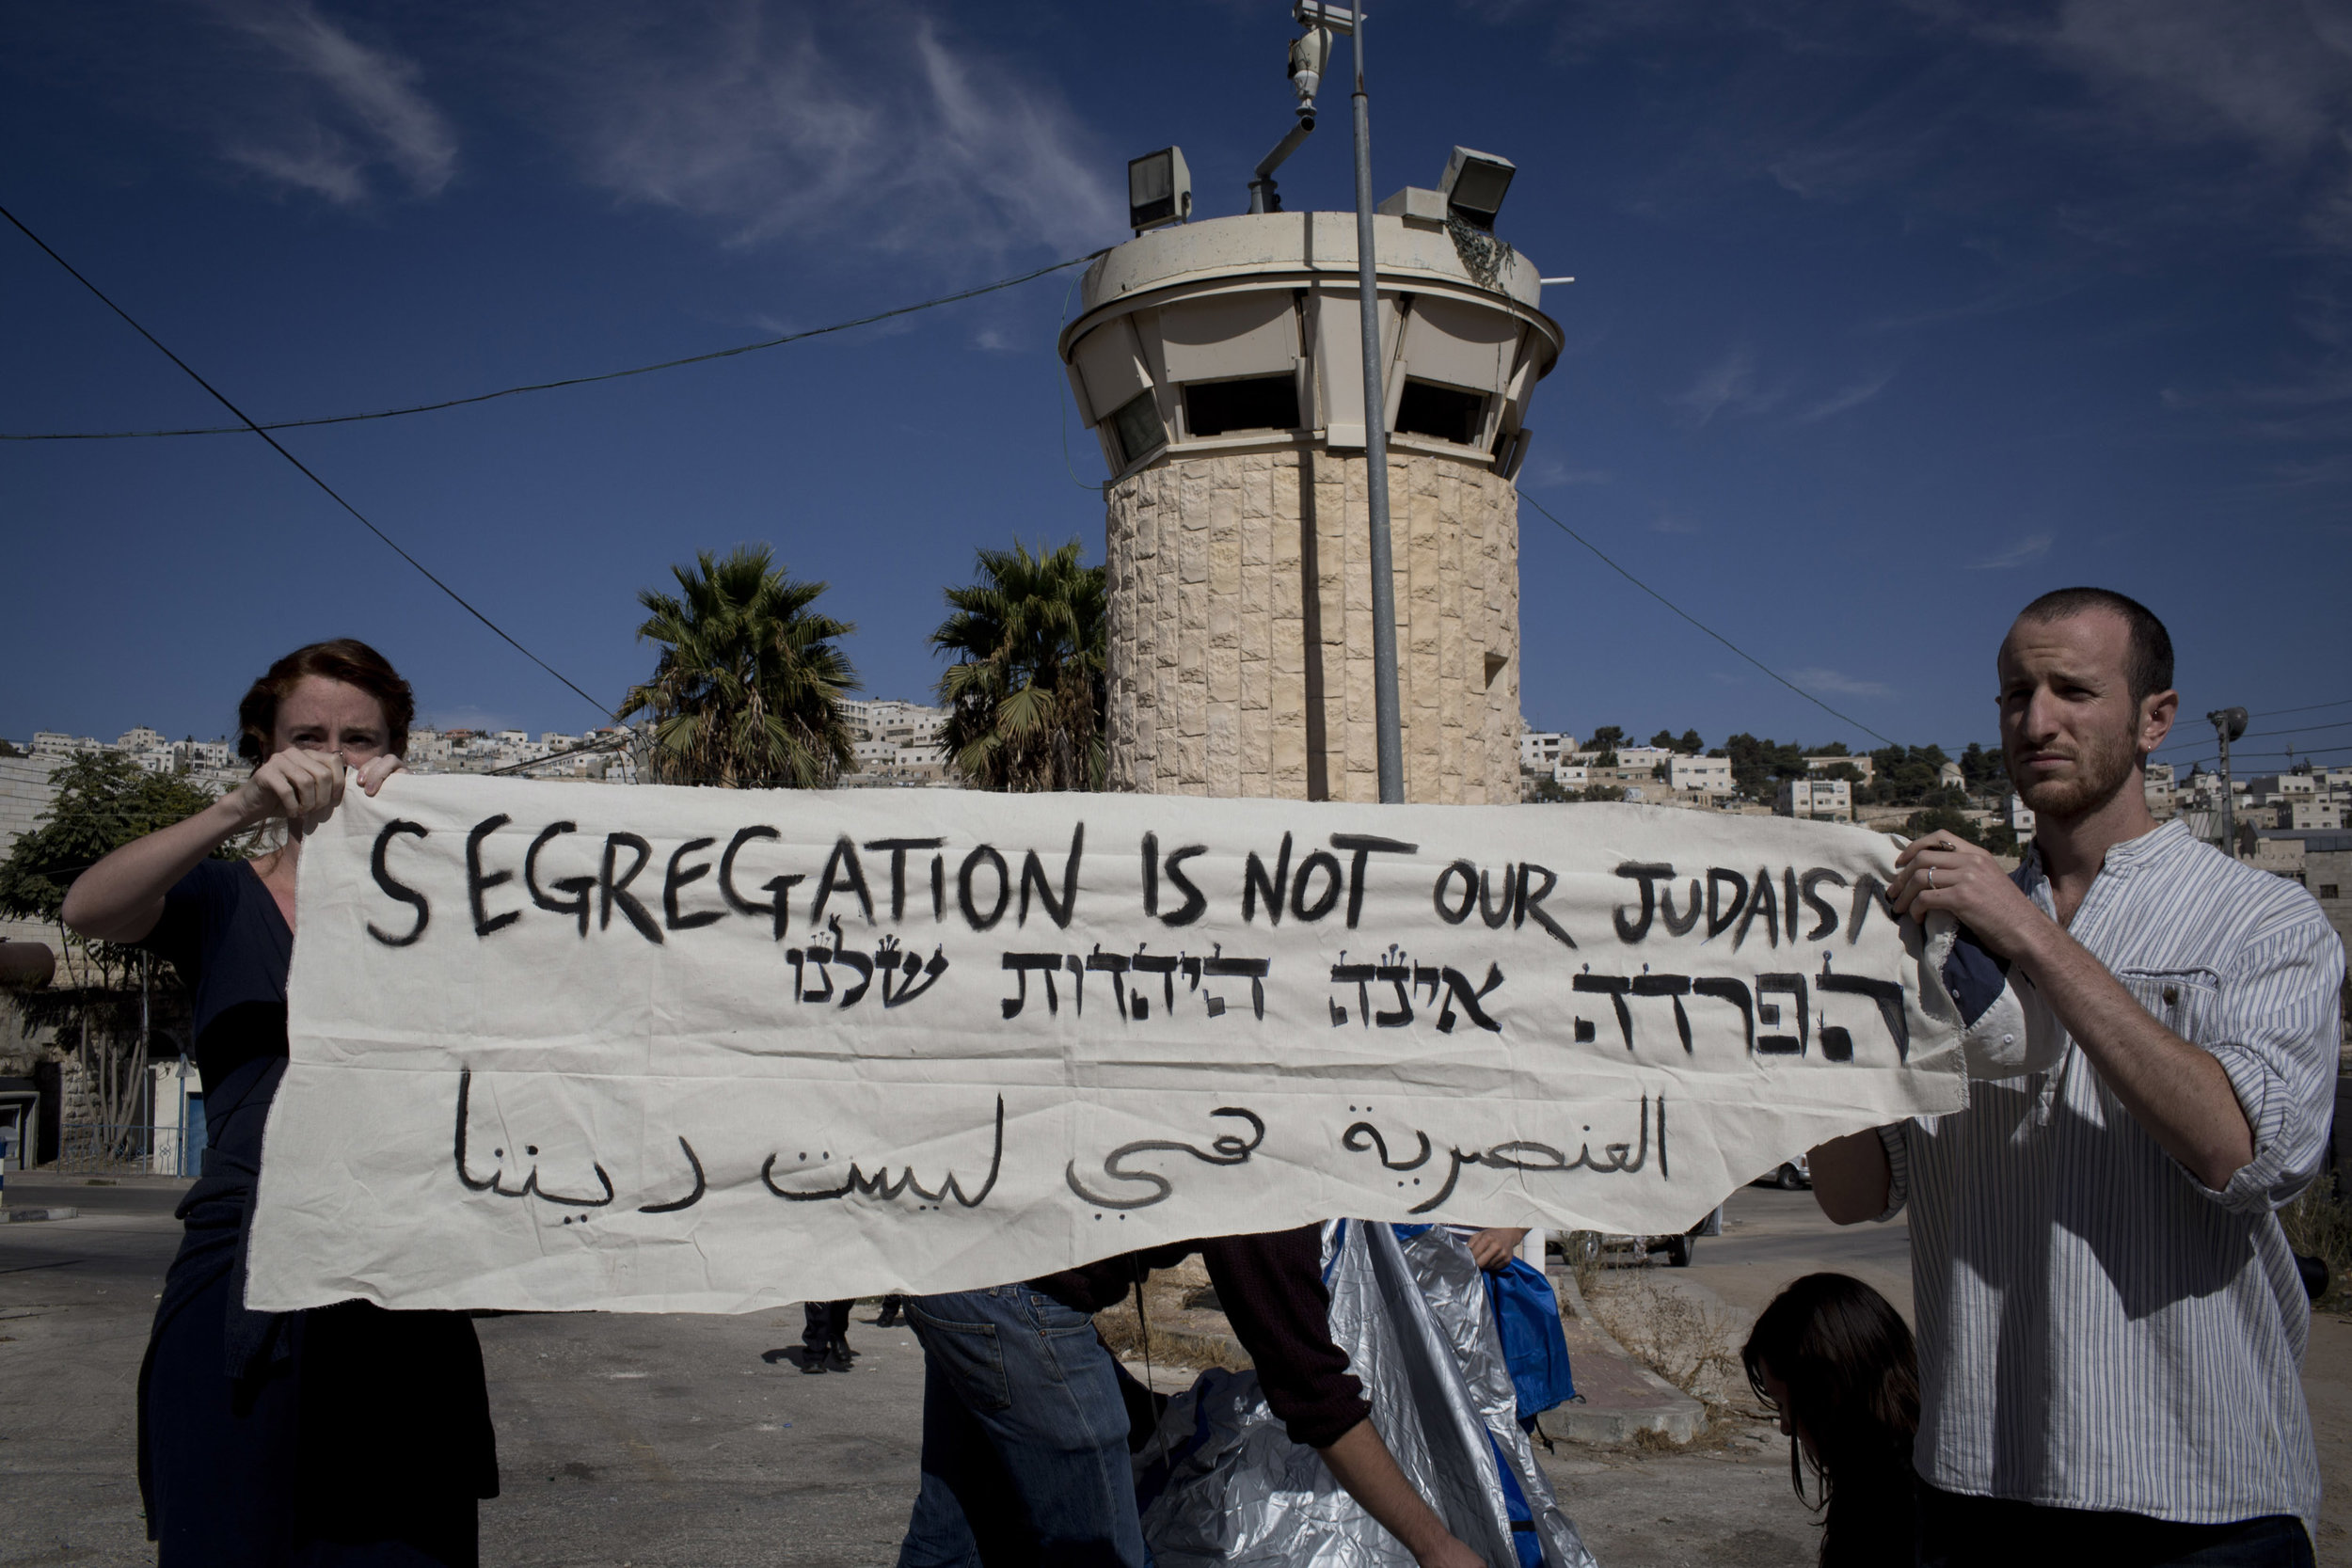 Jews Step Forward - Segregation is not our Judaism.